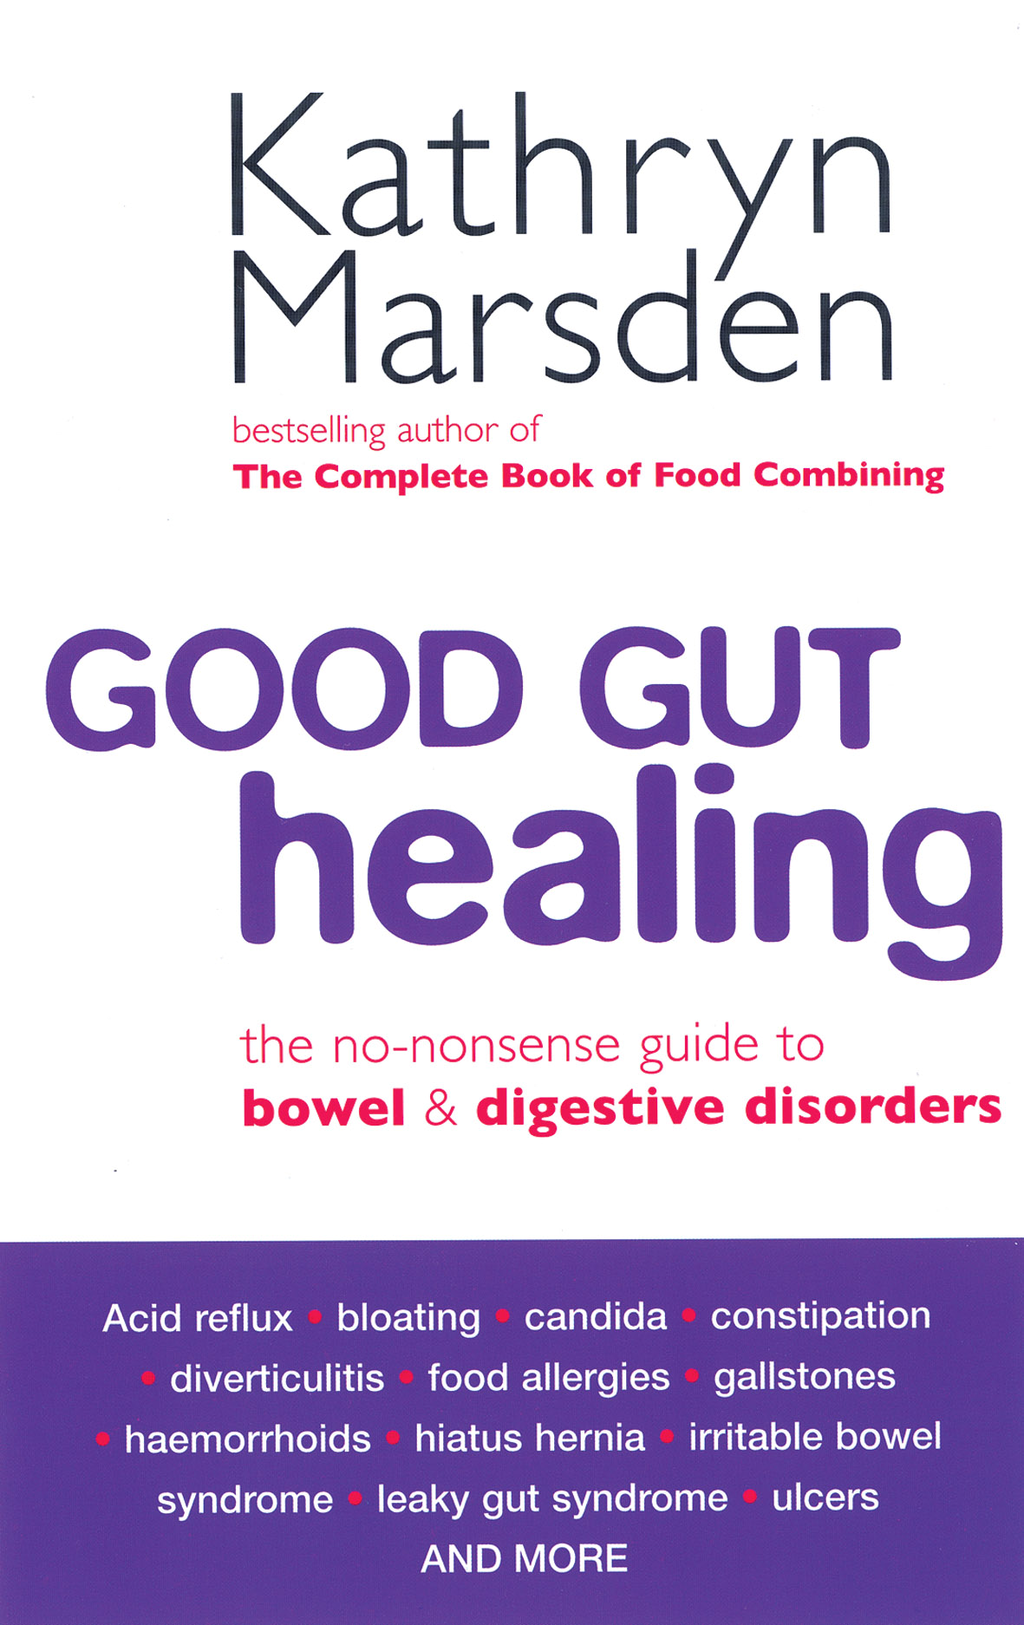 Good Gut Healing The no-nonsense guide to bowel & digestive disorders